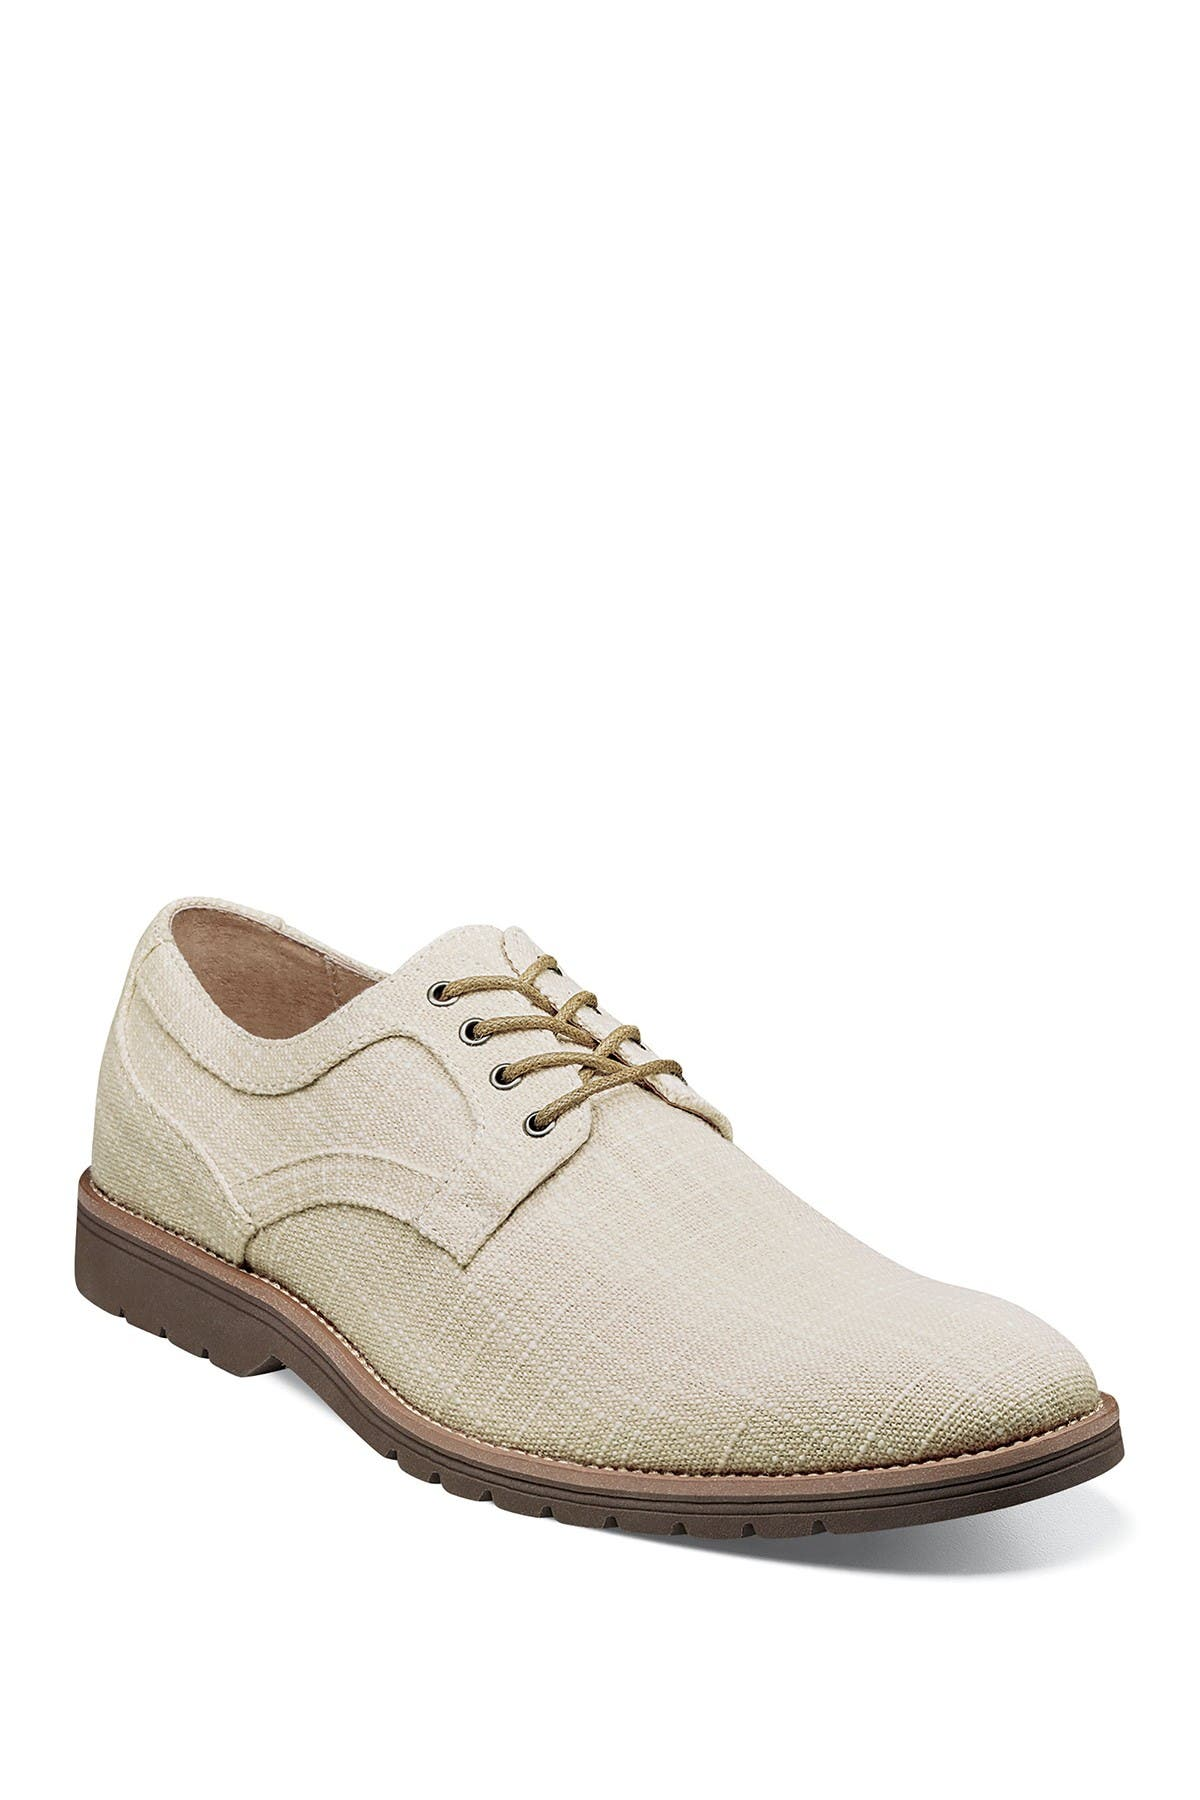 Image of Stacy Adams Eli Textile Oxford